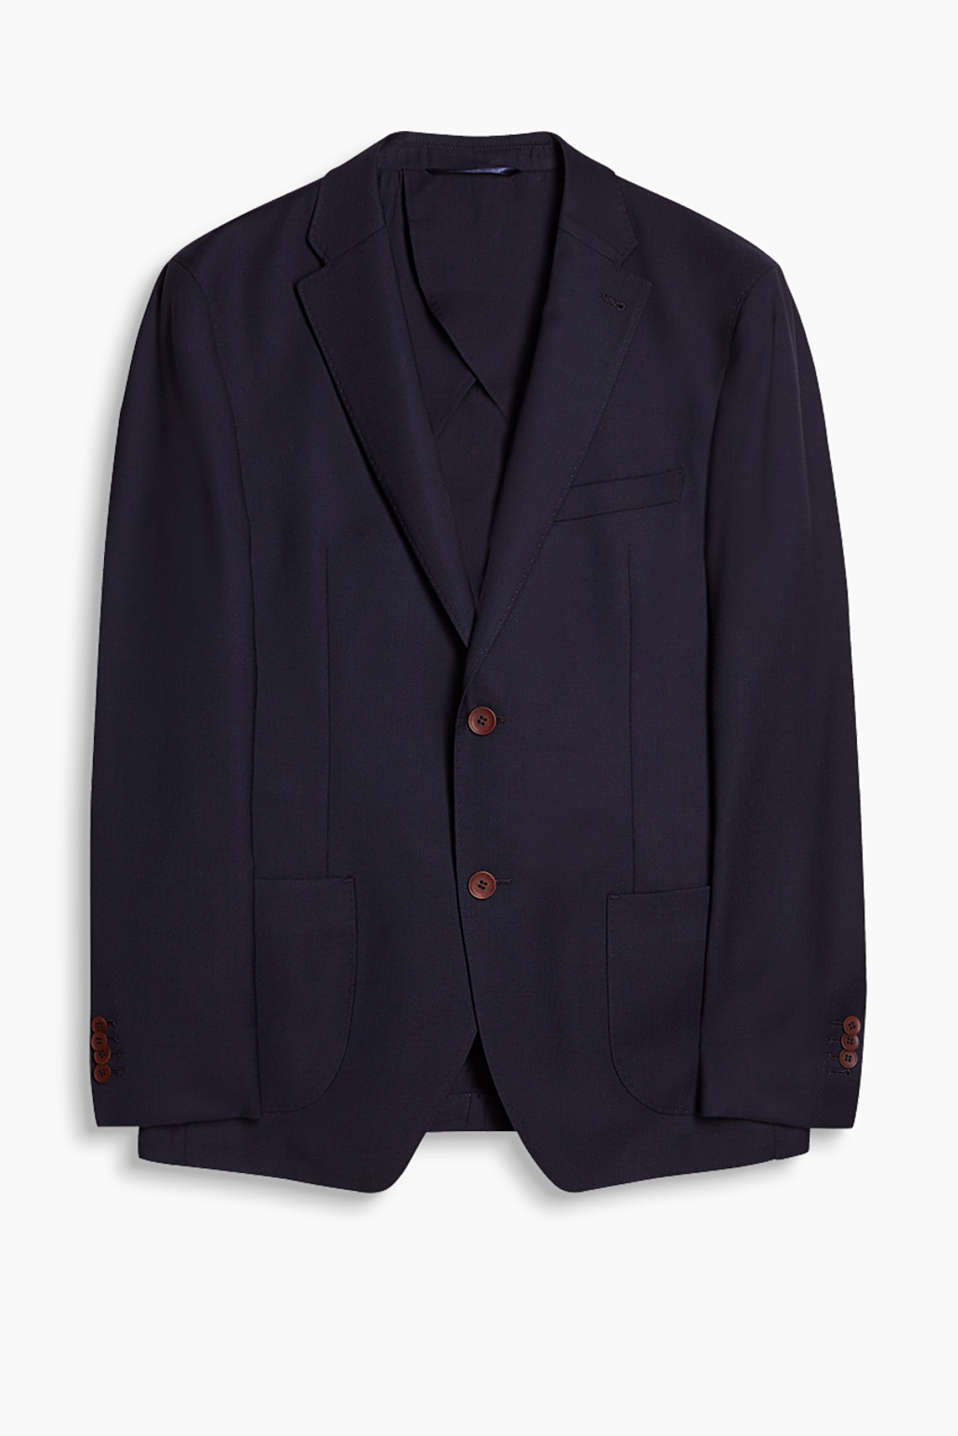 Sports jacket in a timeless design with patch pockets